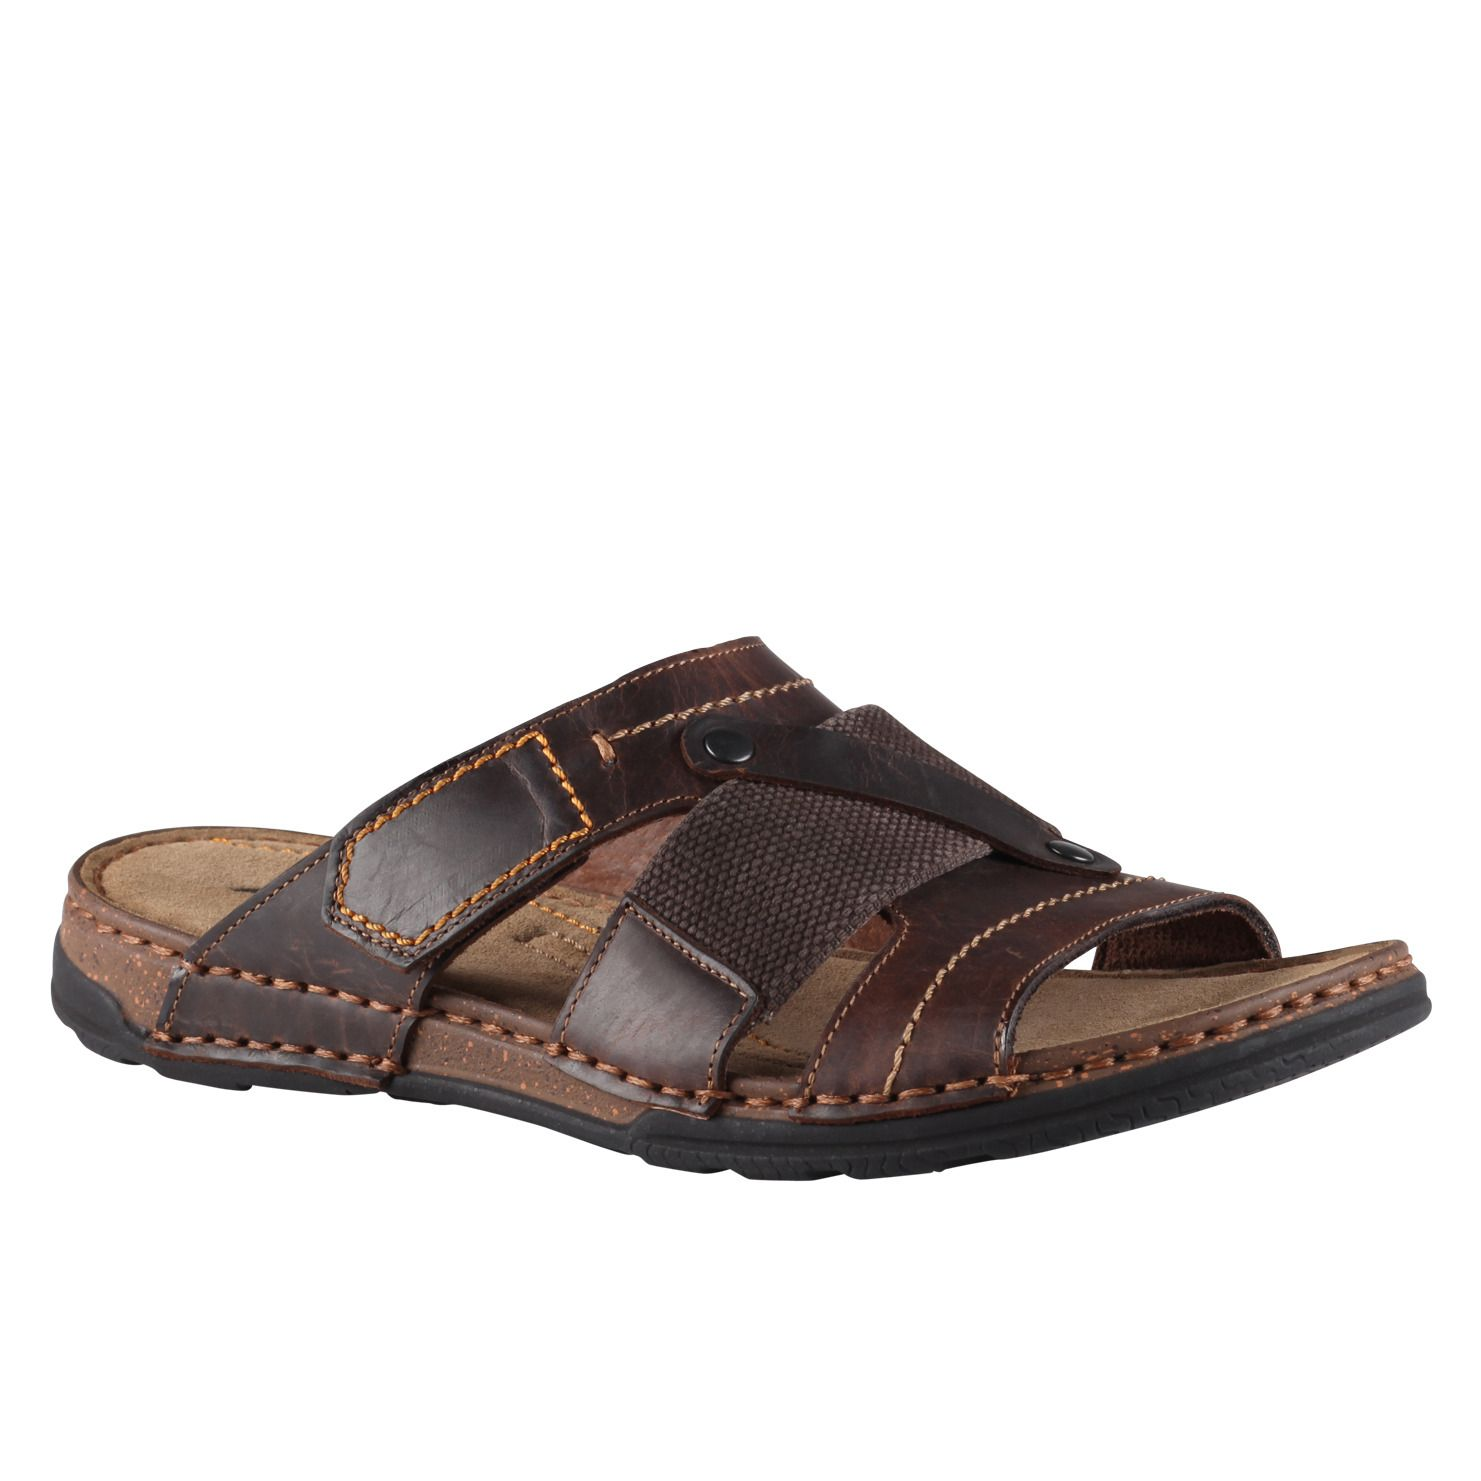 5ac3531dc44f SIRKO - men's sandals for sale at ALDO Shoes. | I like in 2019 ...